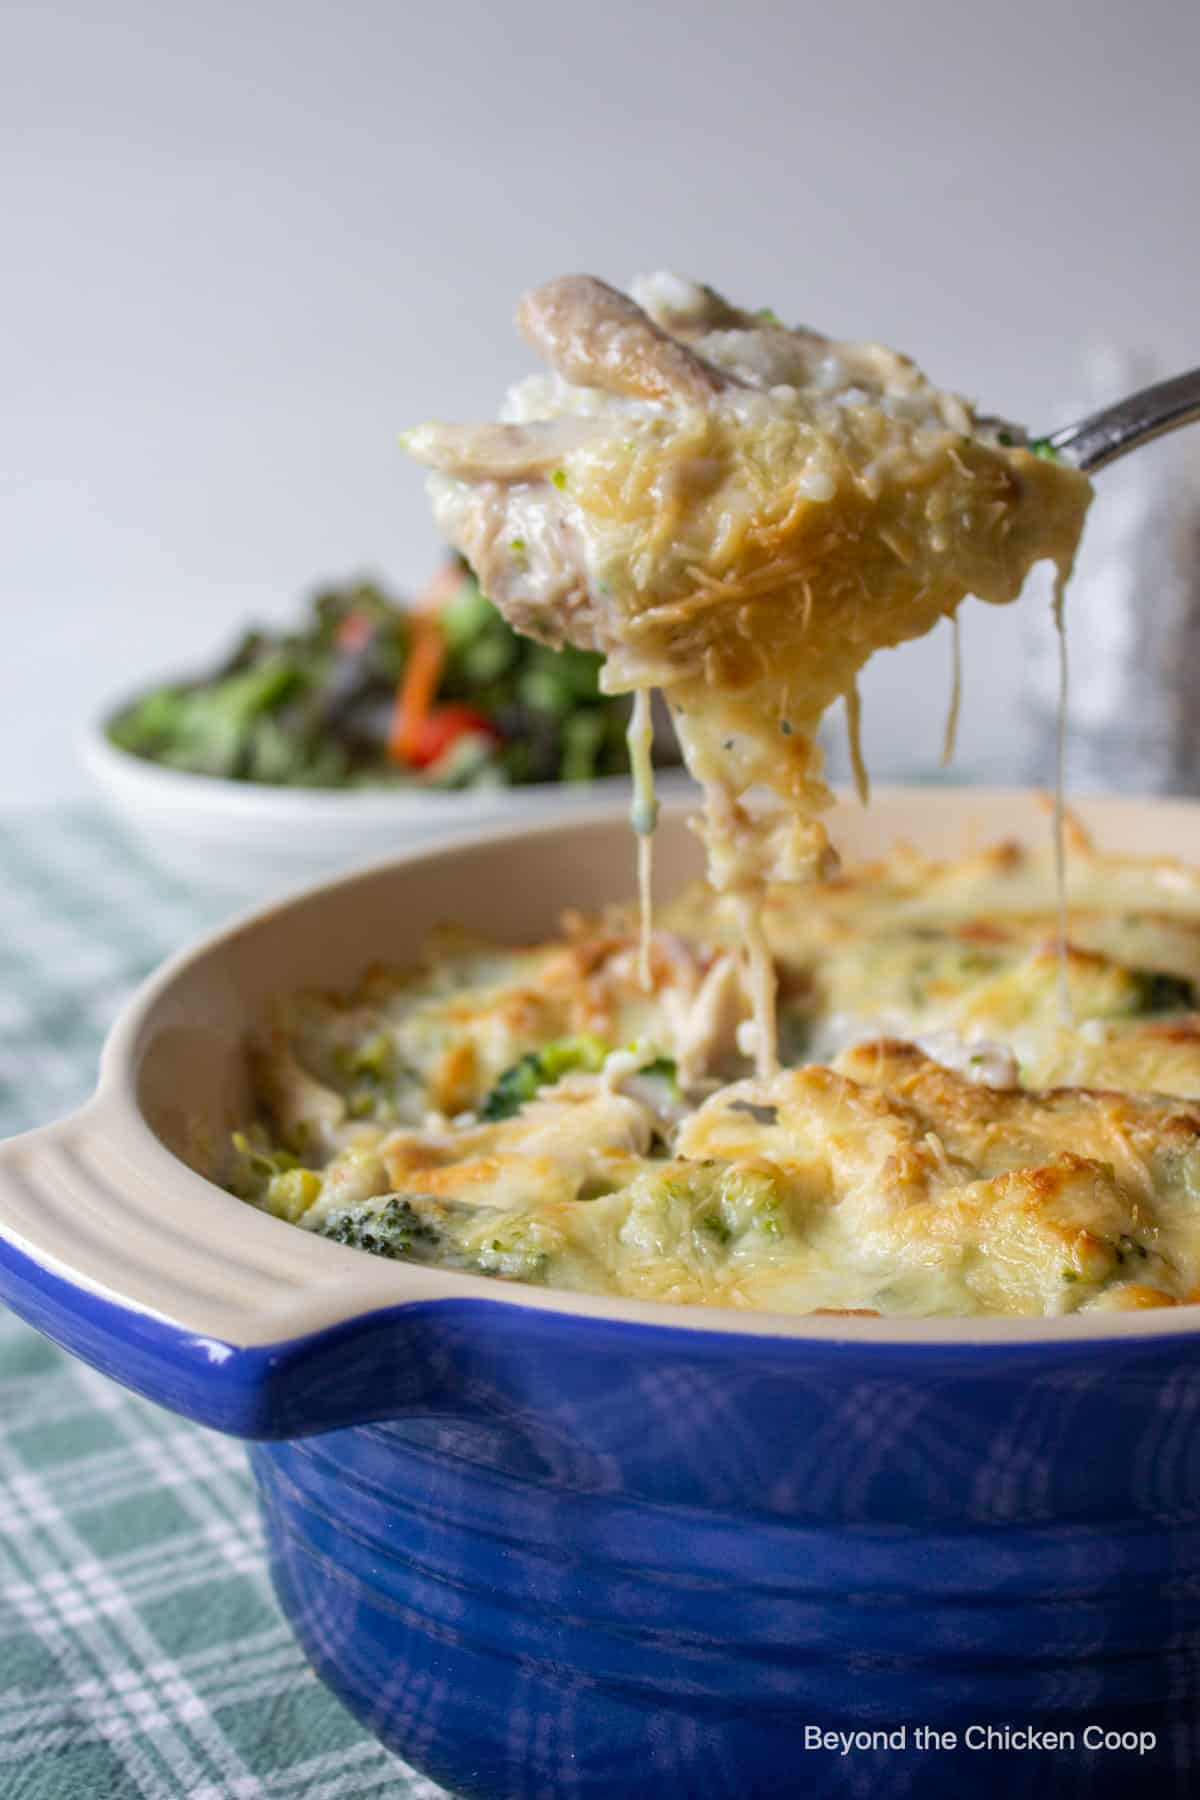 A spoonful of a cheesy casserole.